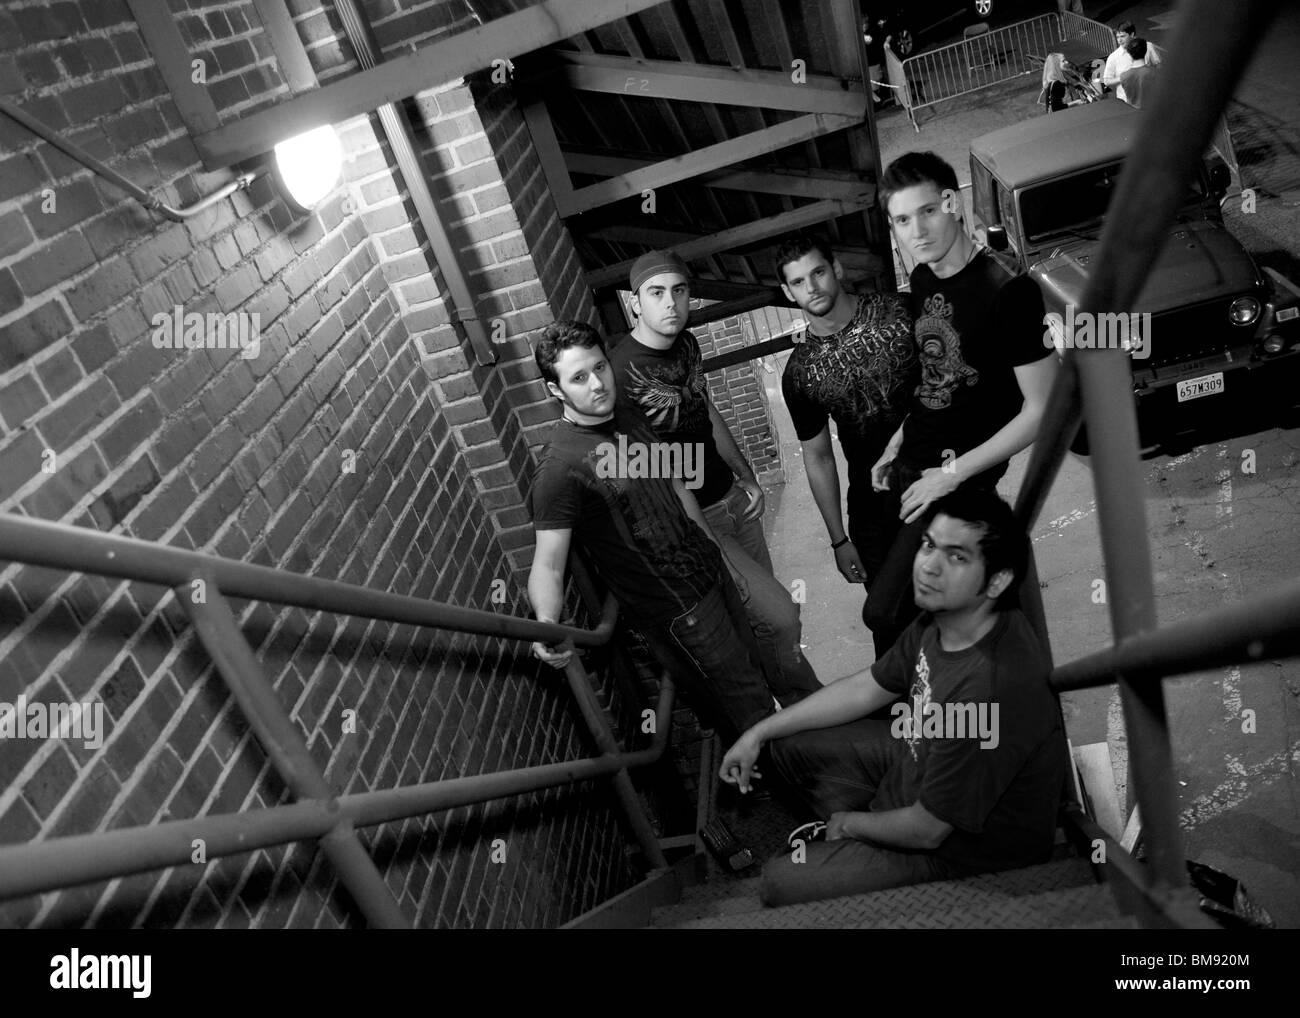 Rock band members promo photo on fire escape stairs - Stock Image